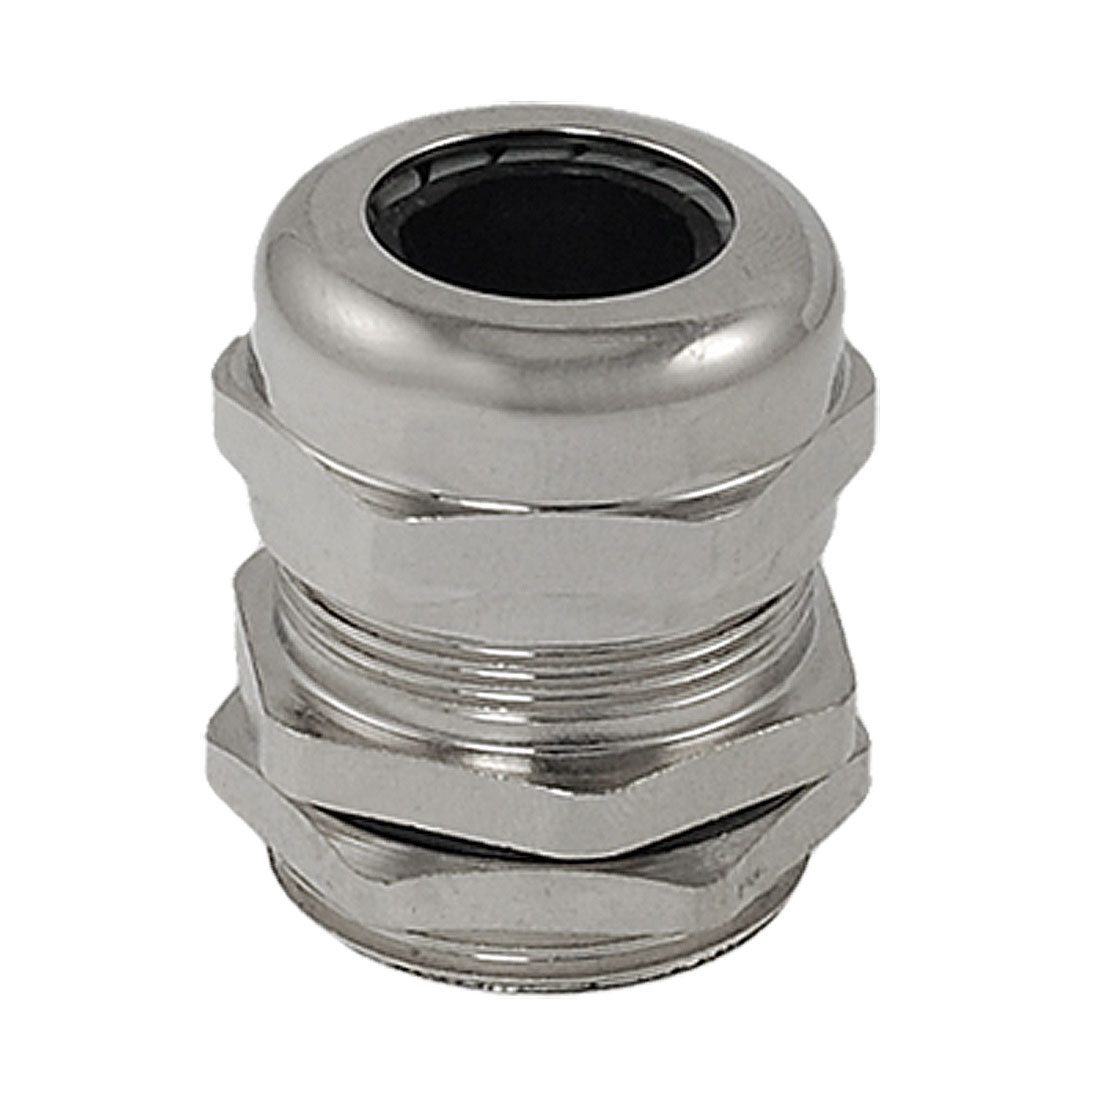 Stainless Steel PG16 Waterproof Connector Glands for 11-15mm Cables